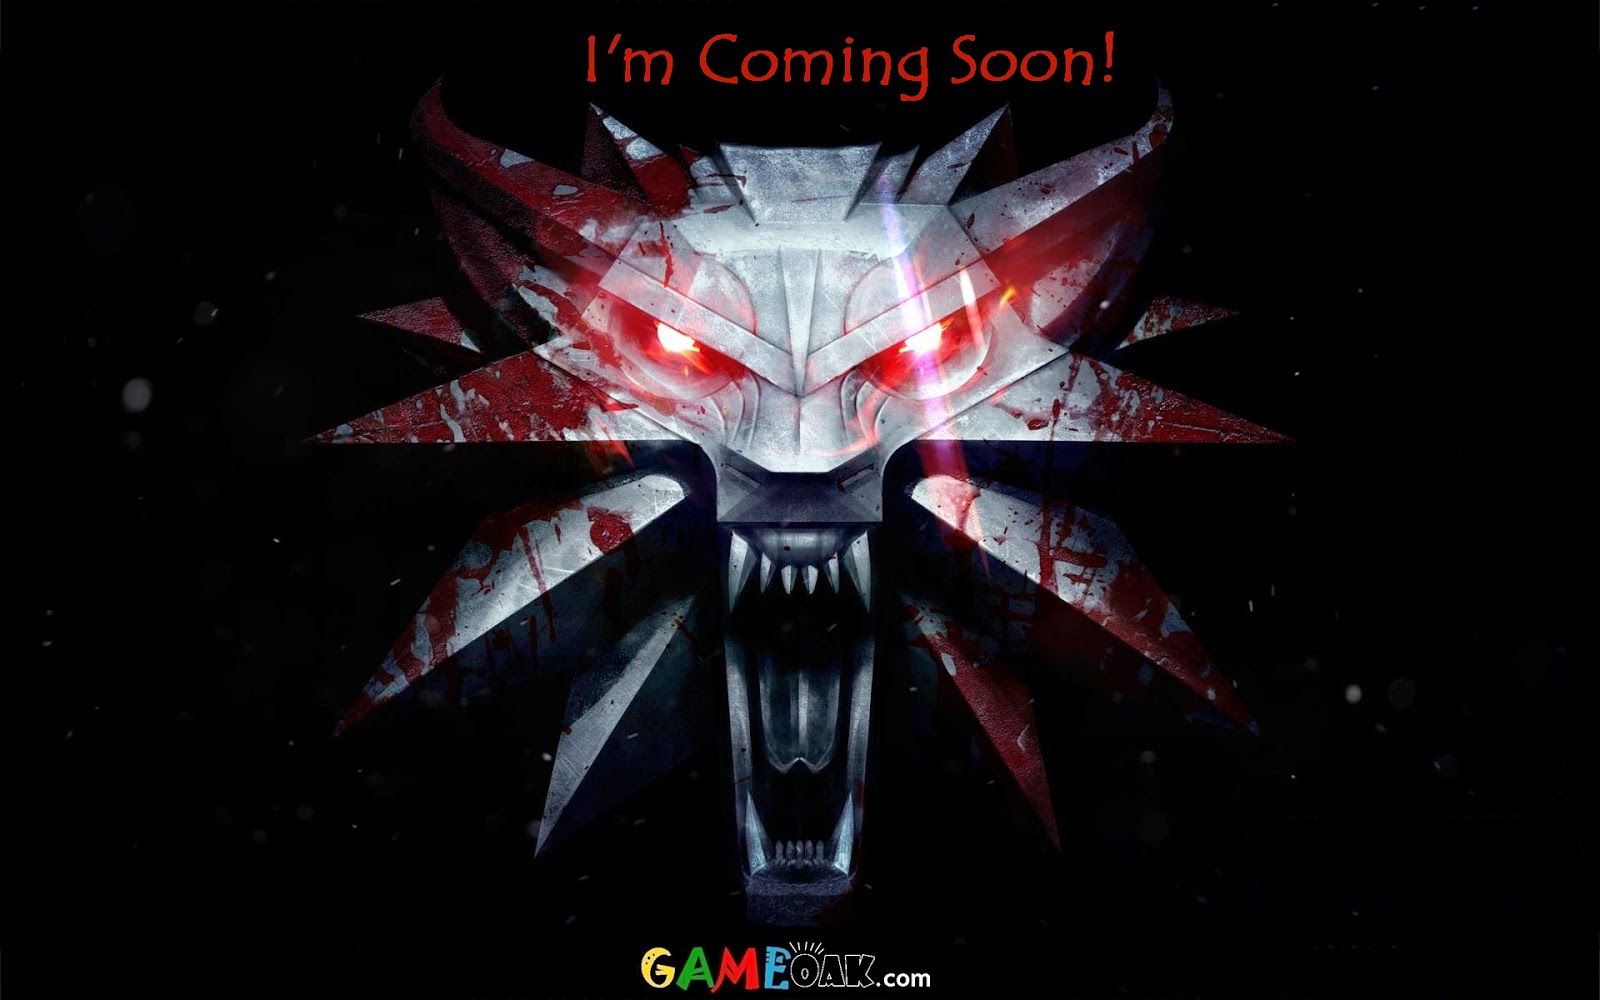 this game will be released on May 19, 2015